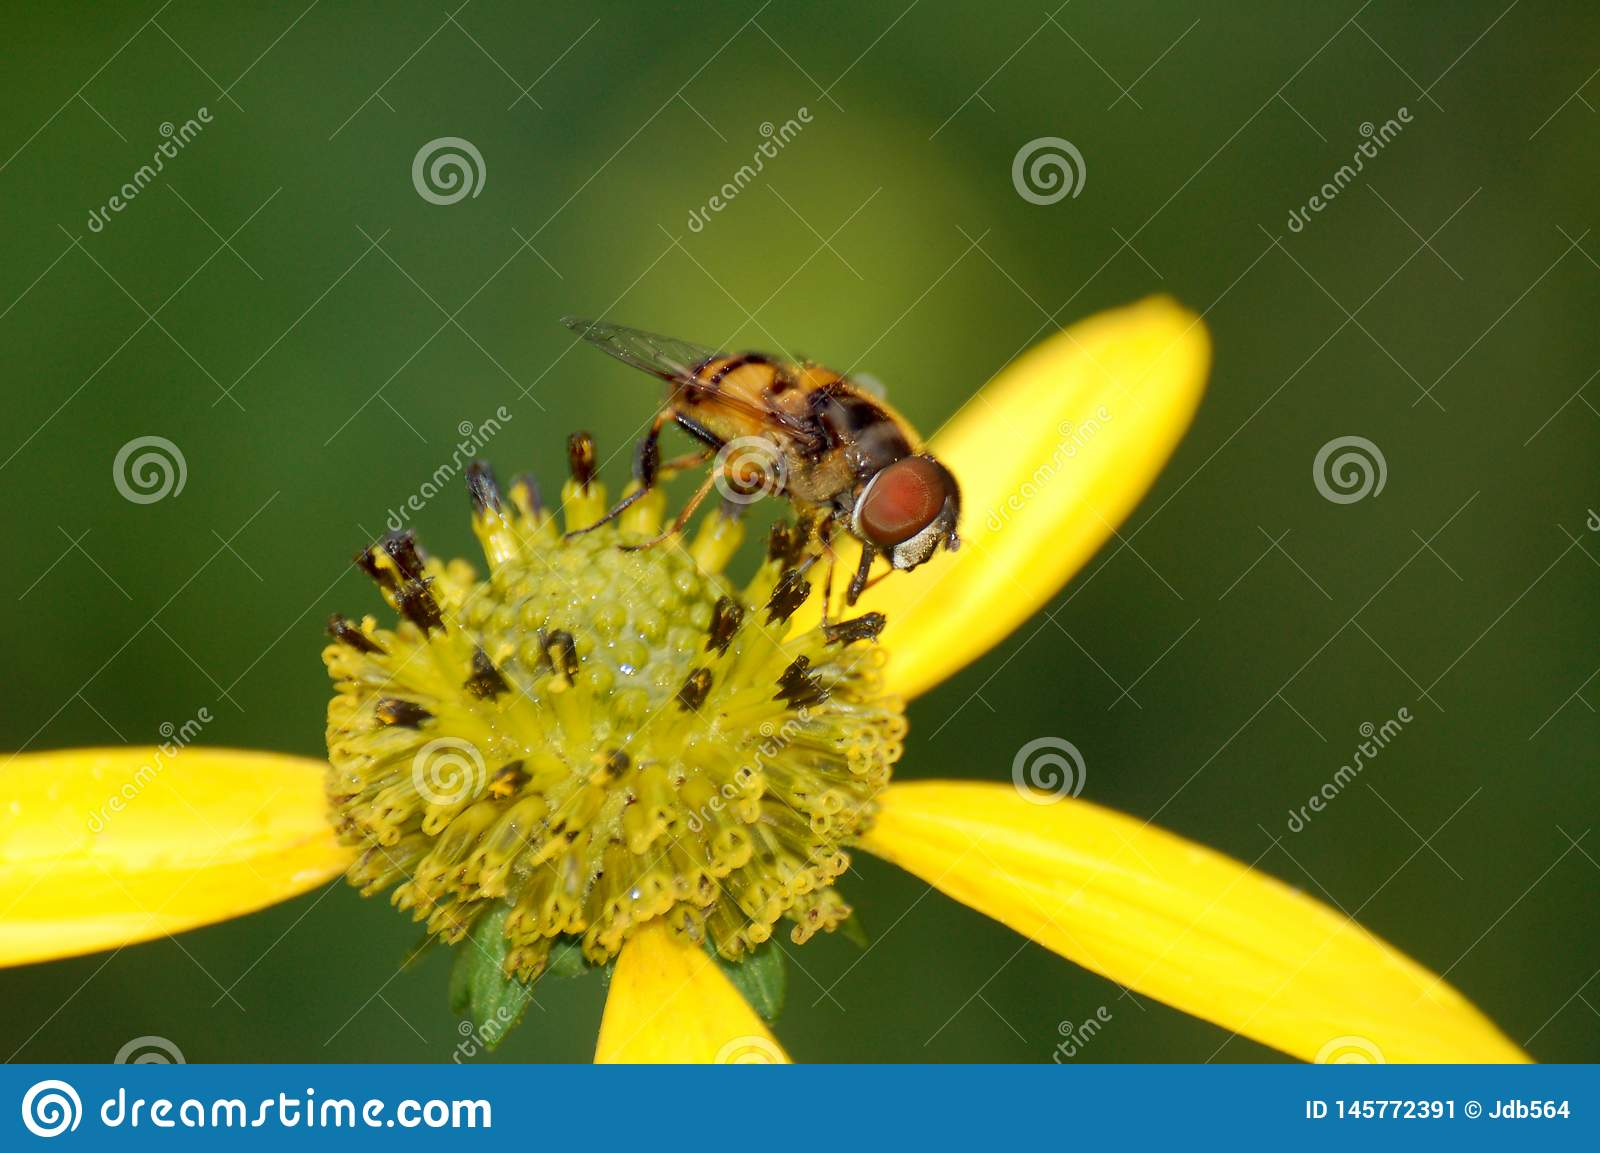 A small fly on a yellow flower